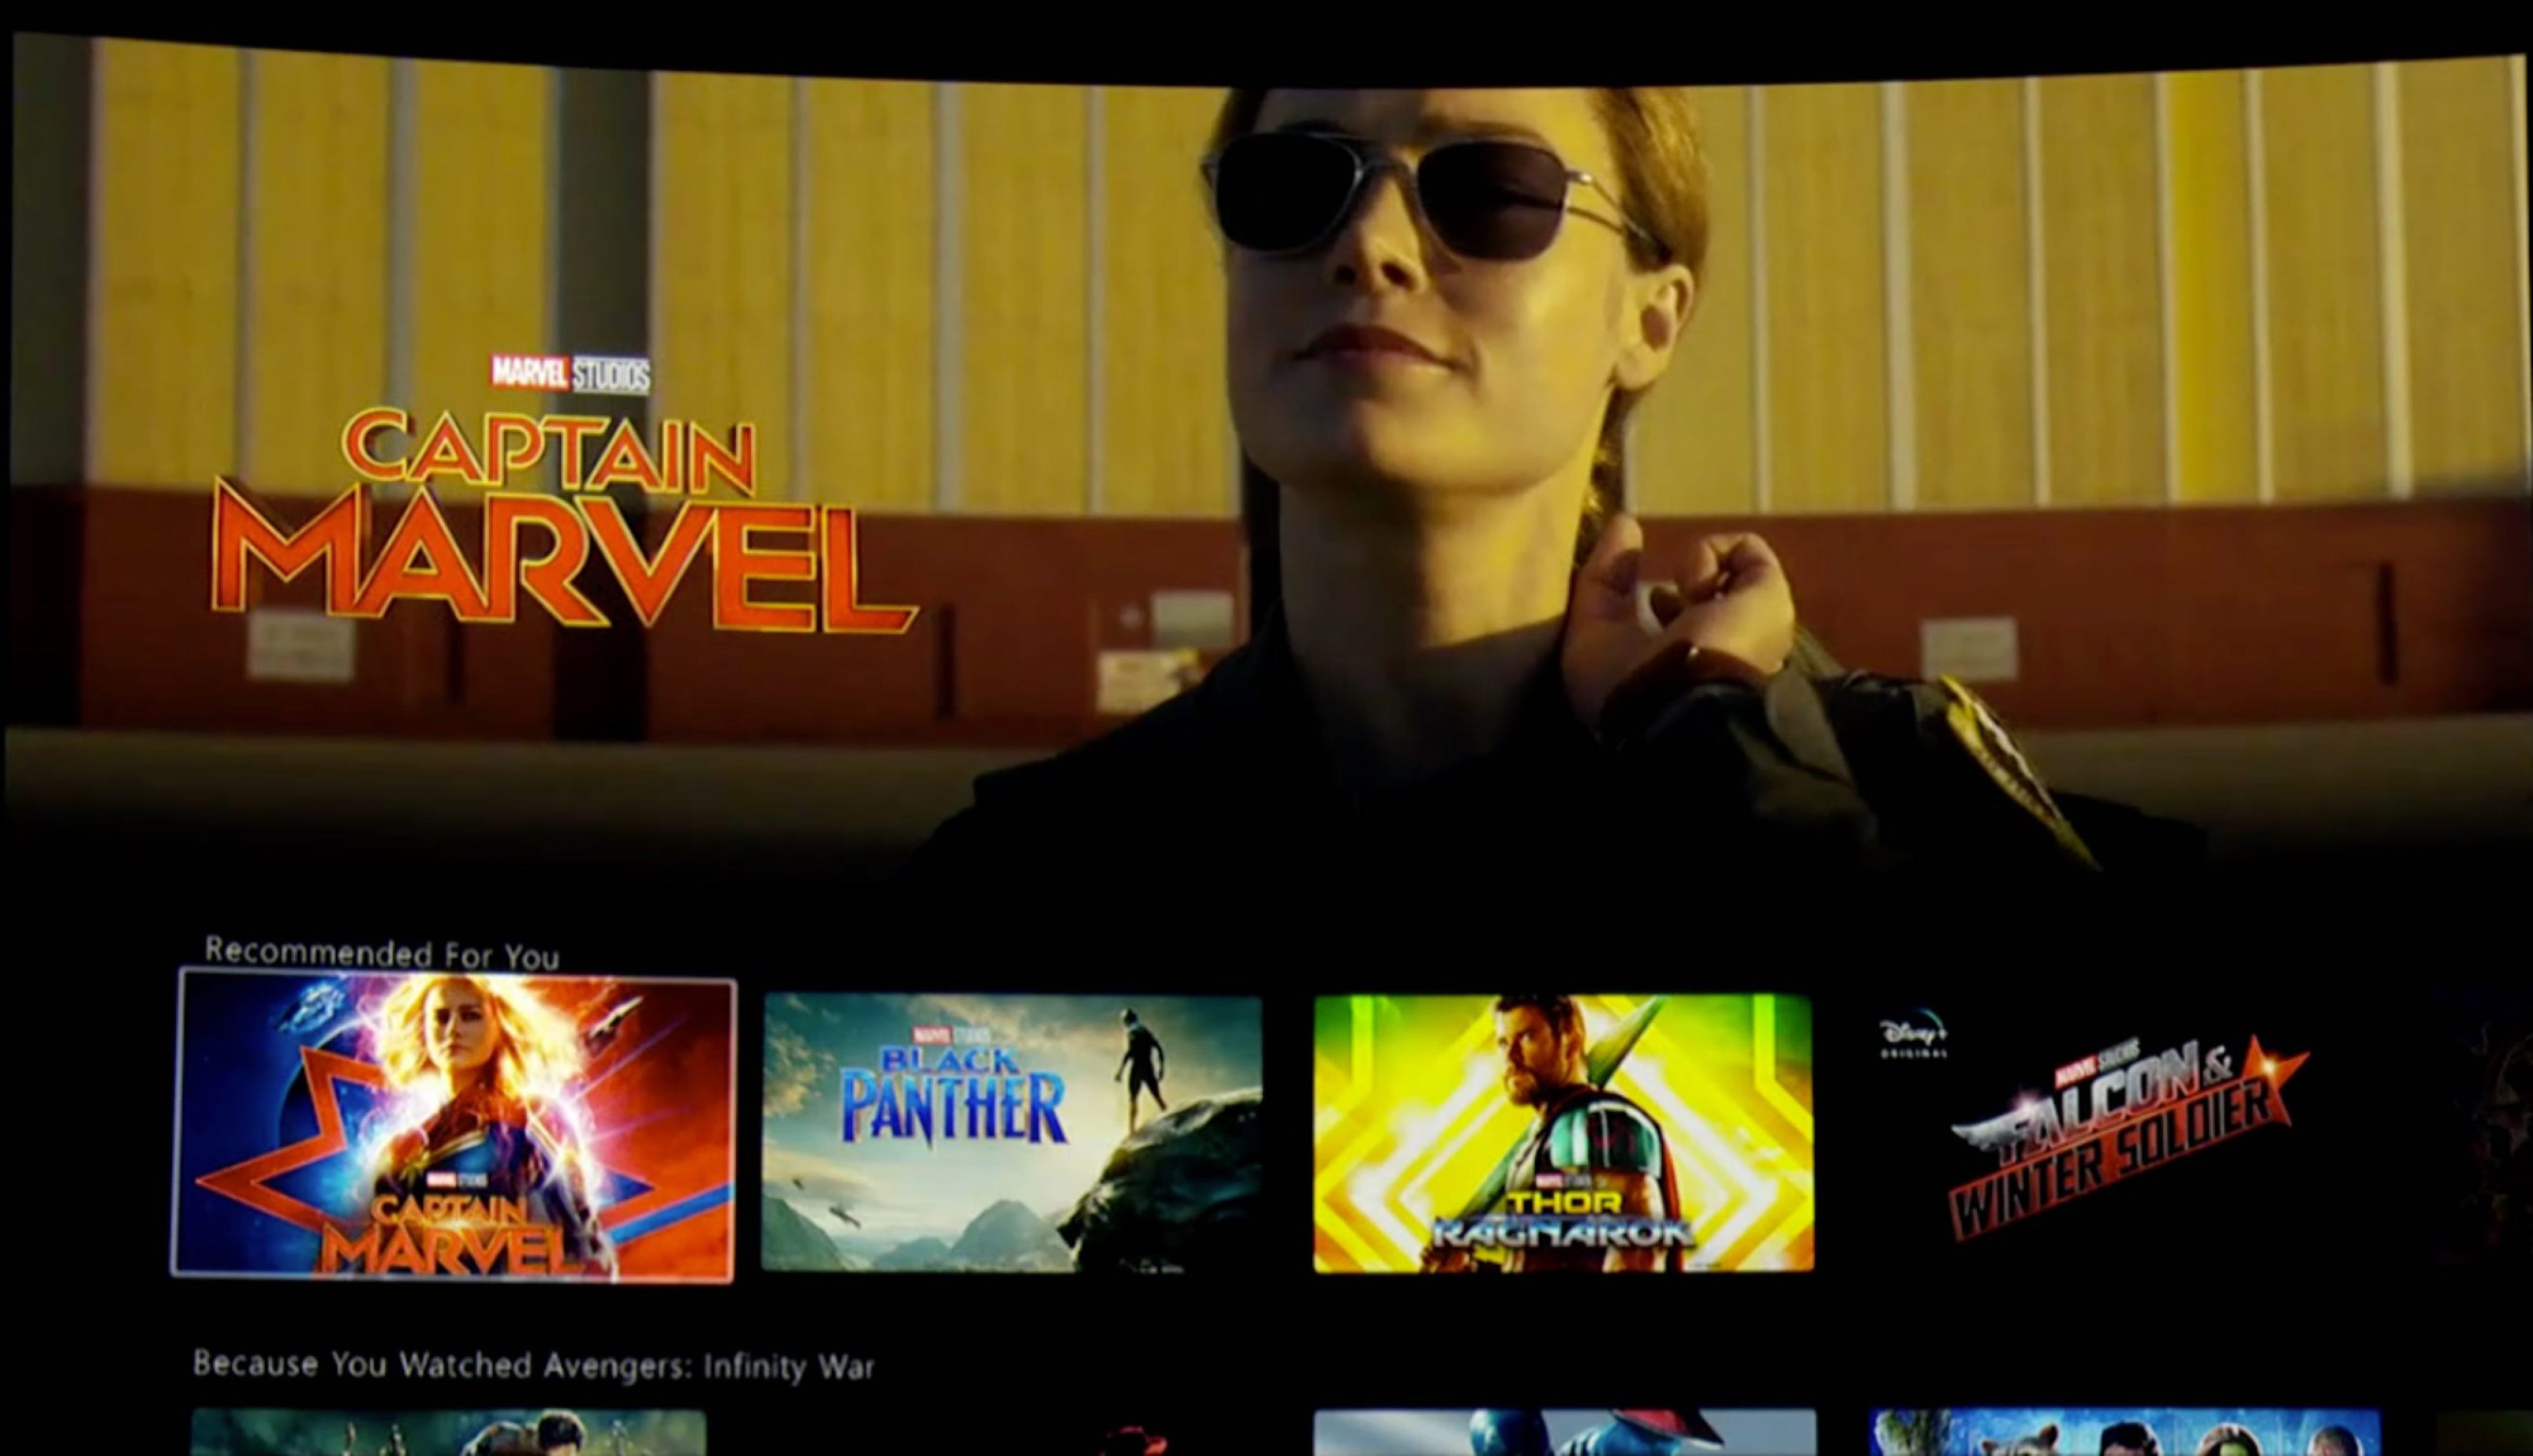 Image de l'interface Disney+ dans la catégorie Marvel avec Captain Marvel, Black Panther, Thor: Ragnarok